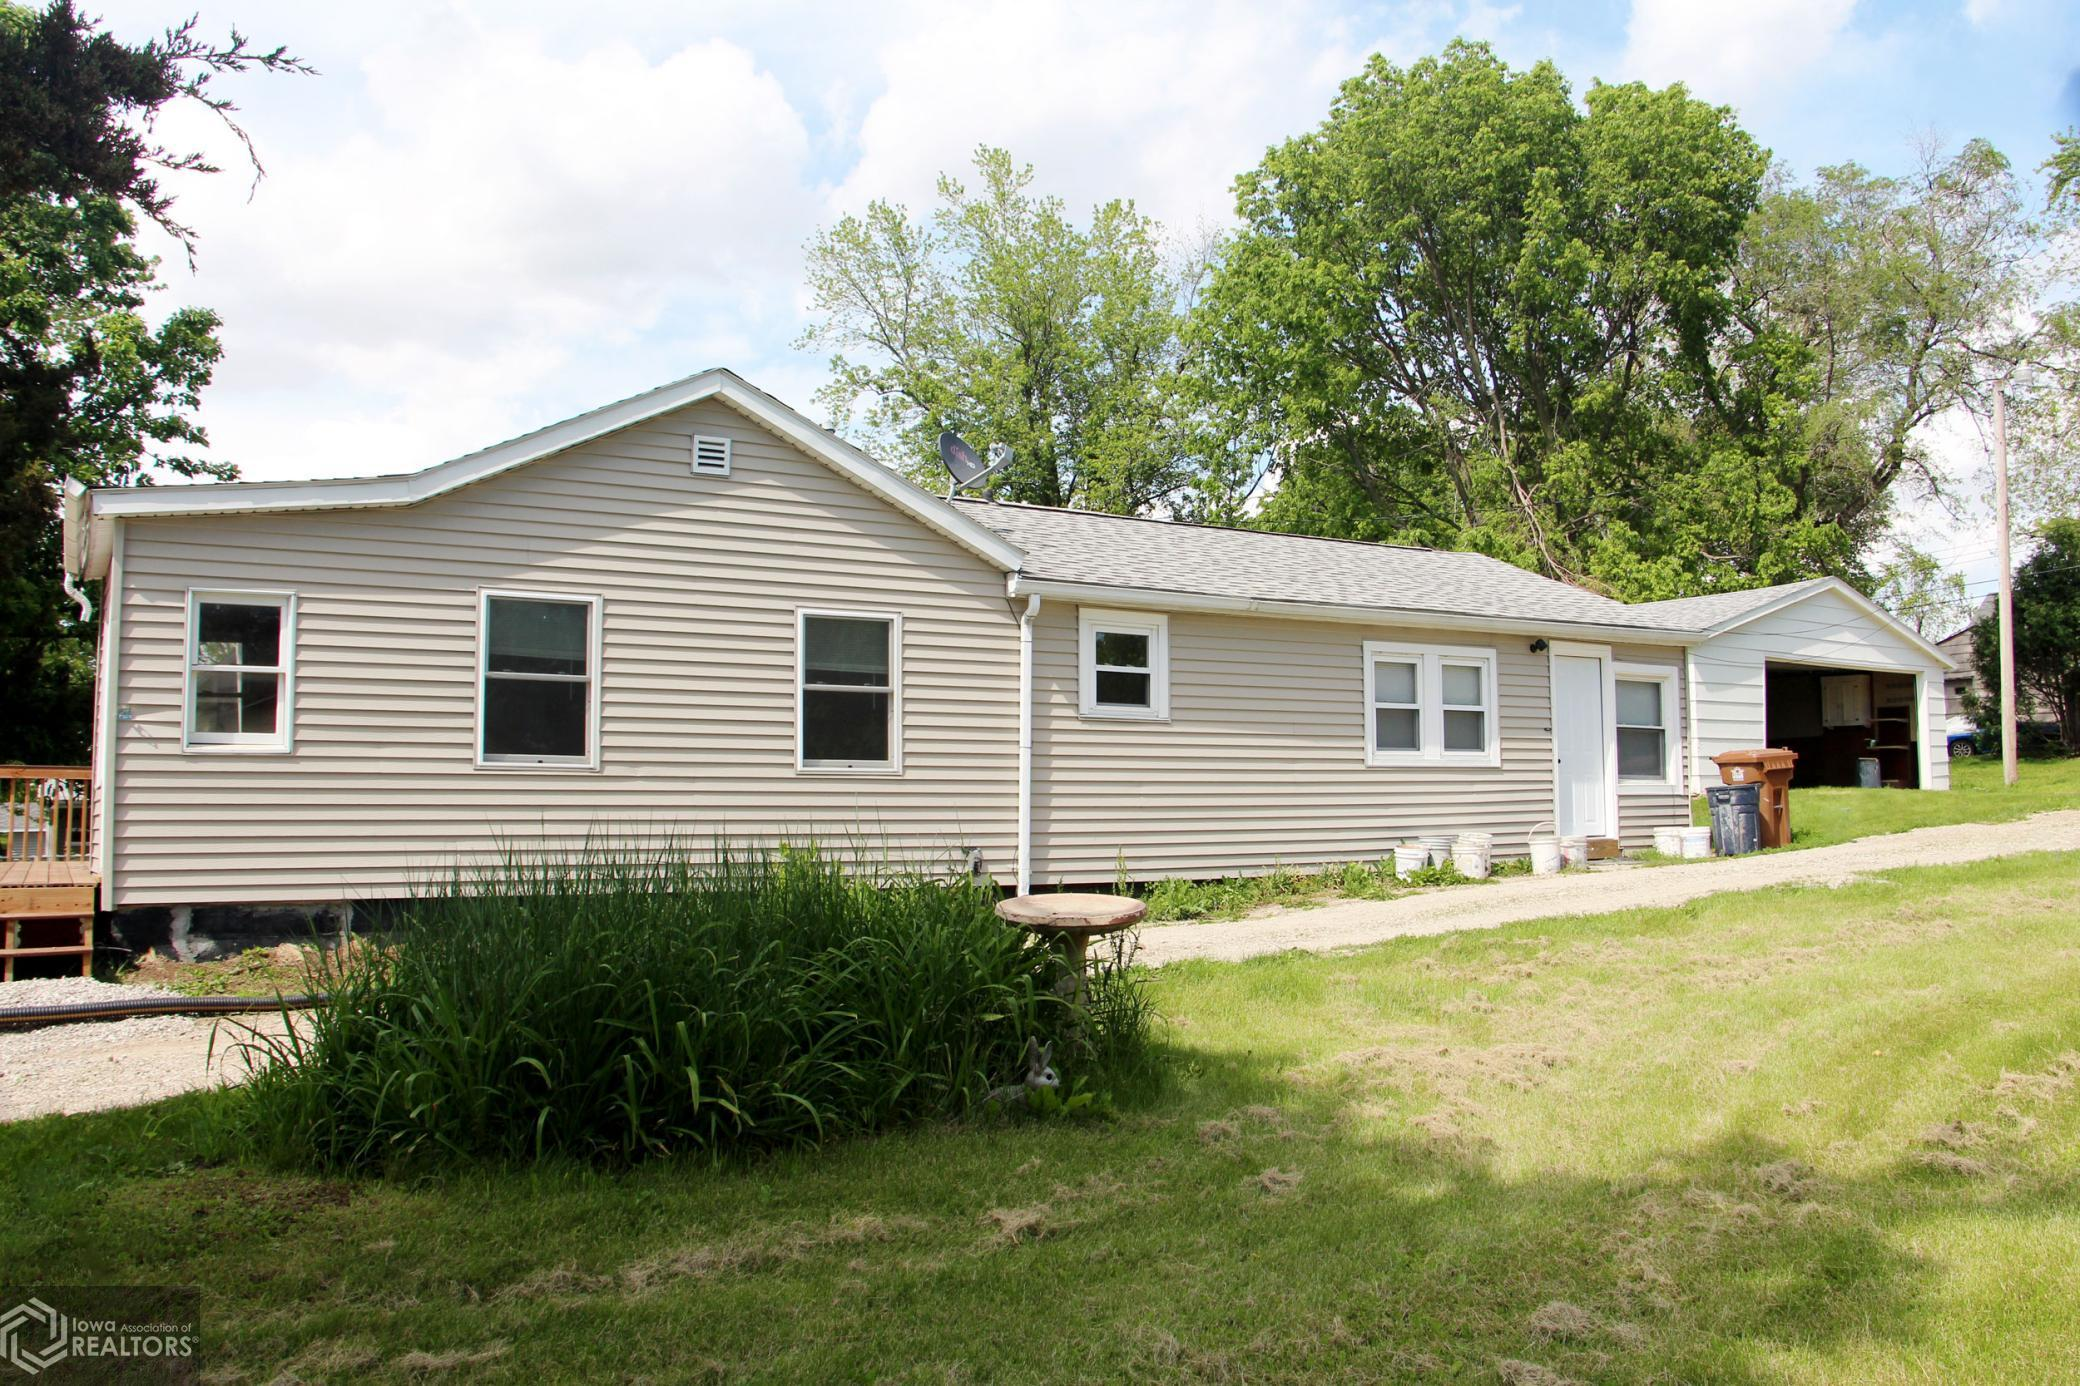 420 Spring, Grinnell, Iowa 50112-2172, 2 Bedrooms Bedrooms, ,1 BathroomBathrooms,Single Family,For Sale,Spring,5768442